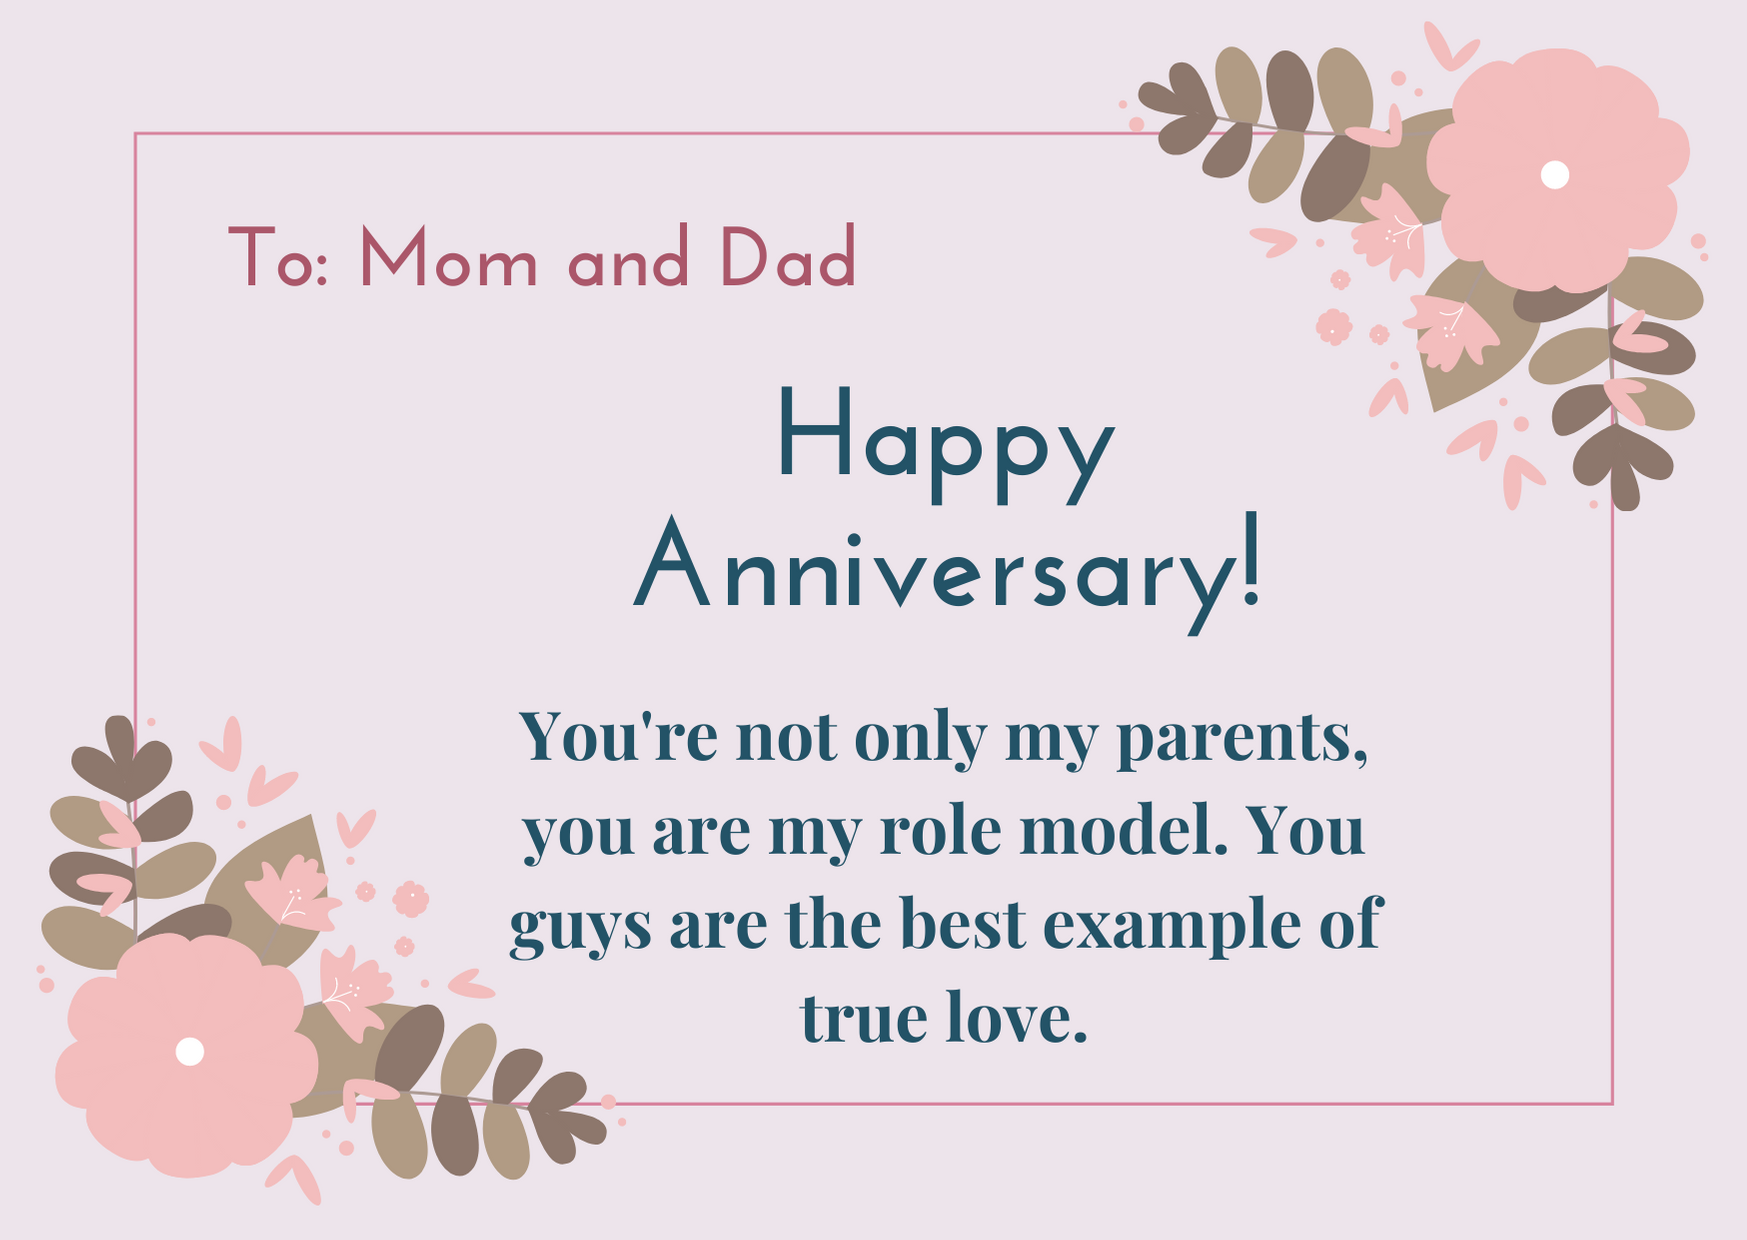 happy anniversary mom and dad from son